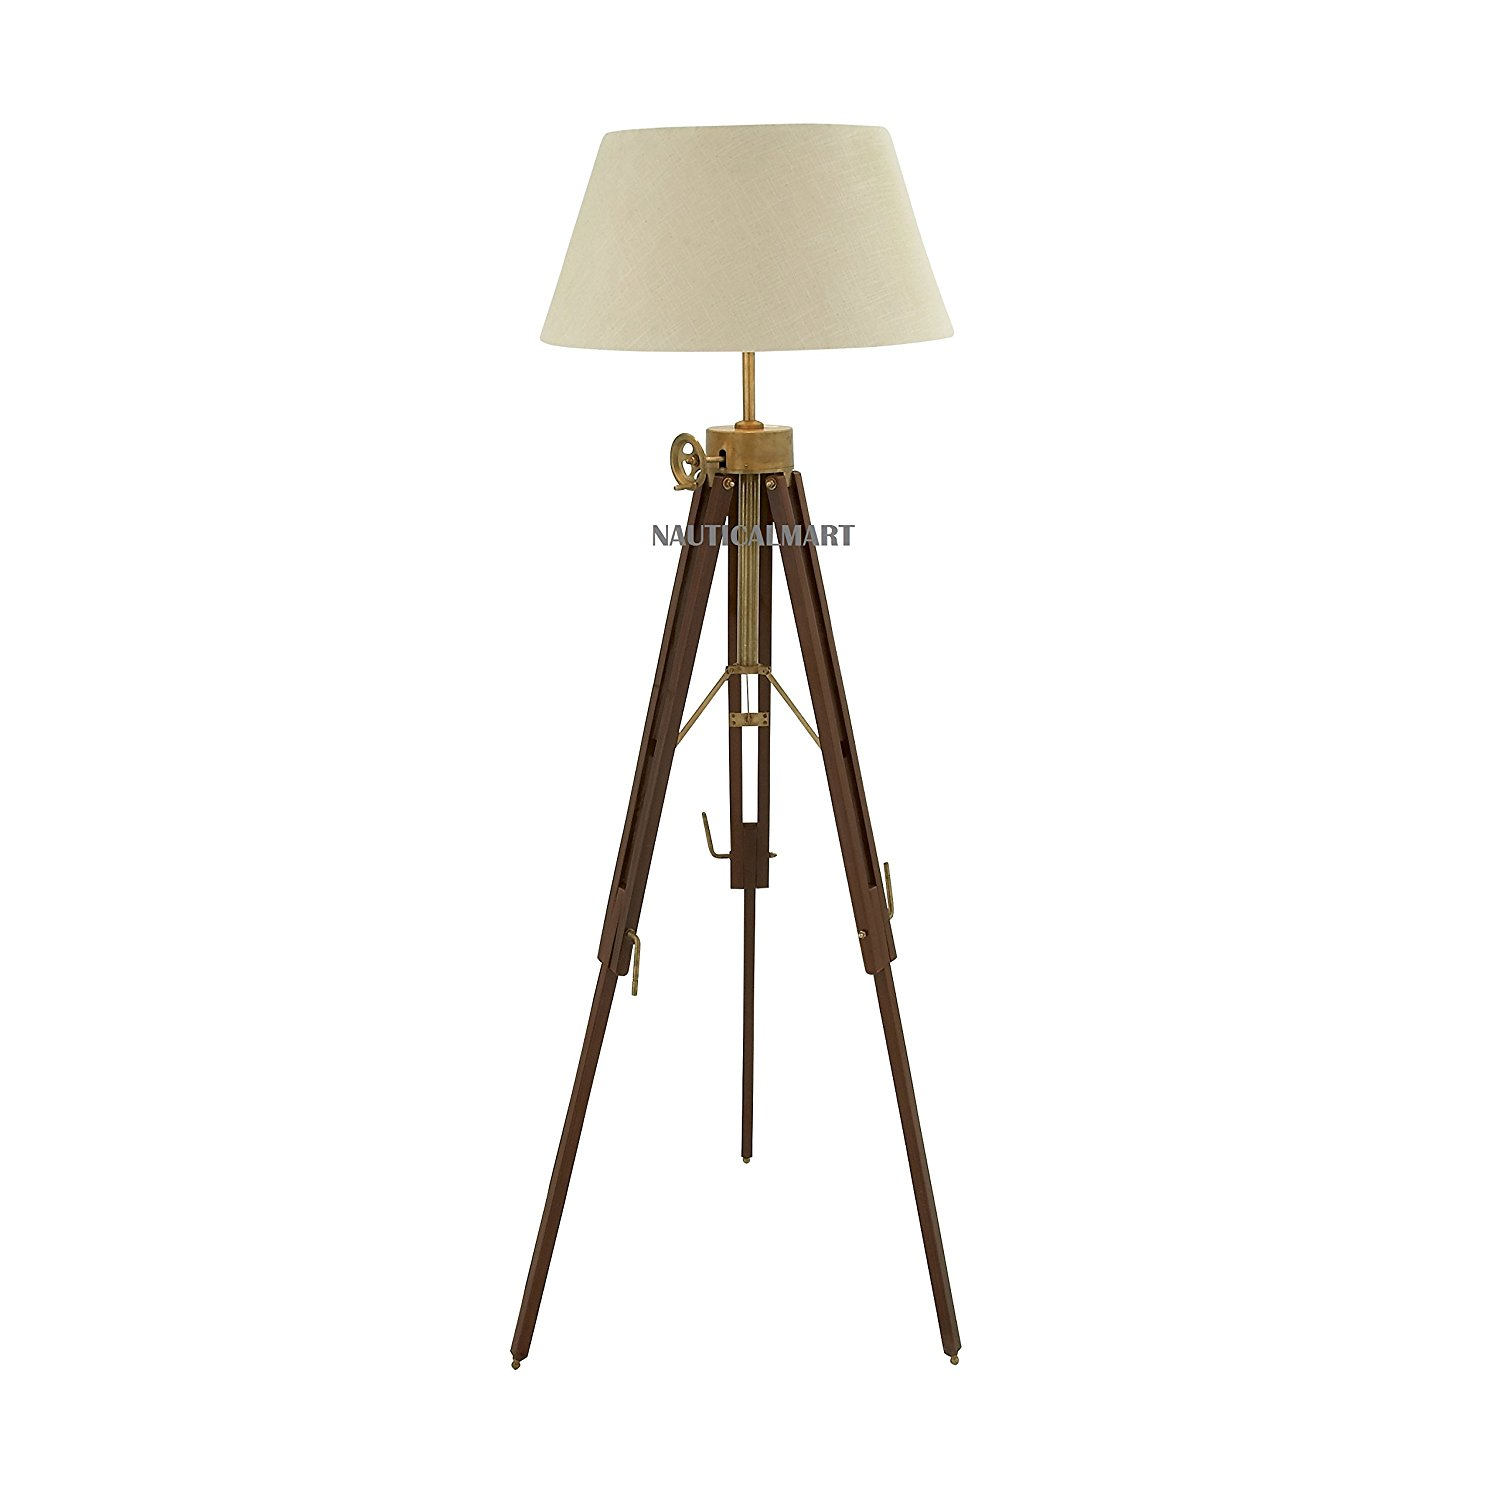 Cheap tripod floor lamp find tripod floor lamp deals on line at get quotations 87 tripod floor lamp by nauticalmart brown mozeypictures Choice Image